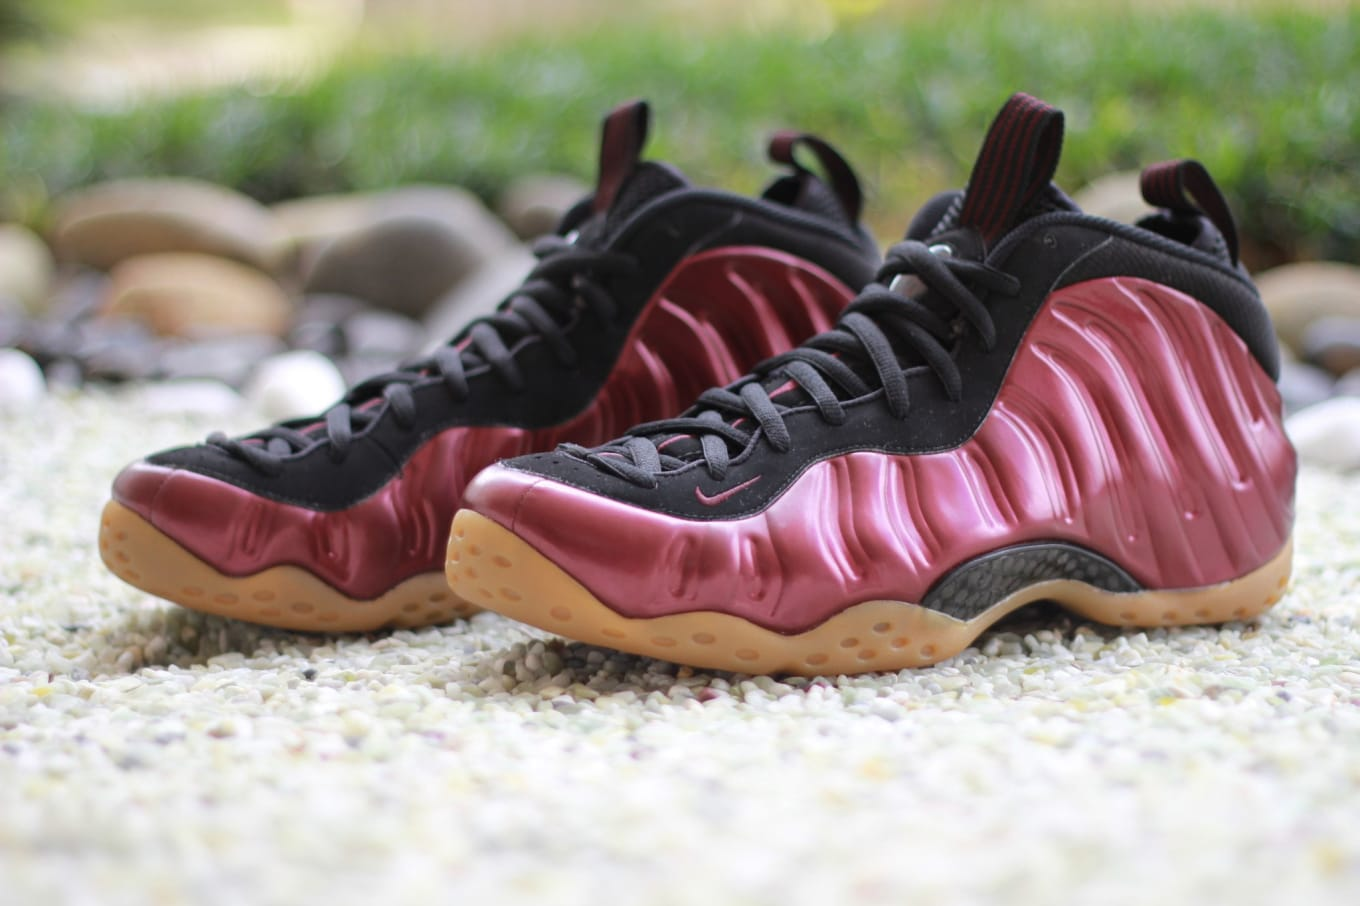 b0a0f6e215e Nike Air Foamposite One